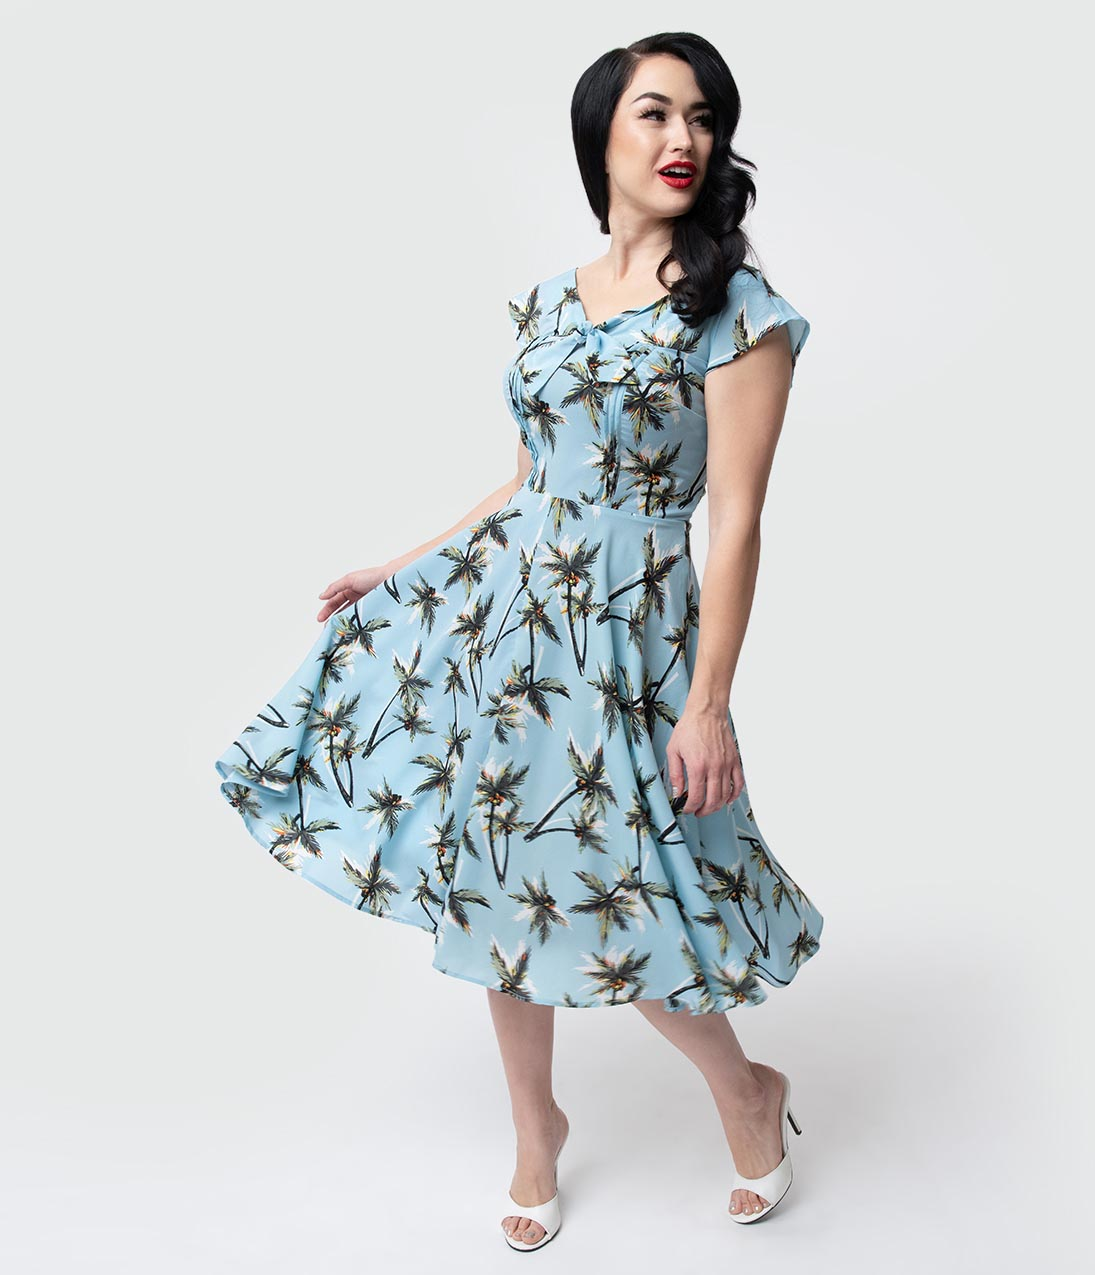 1940s Fashion Advice for Short Women Unique Vintage 1940S Style Light Blue Palm Tree Print Havilland Dress $32.99 AT vintagedancer.com